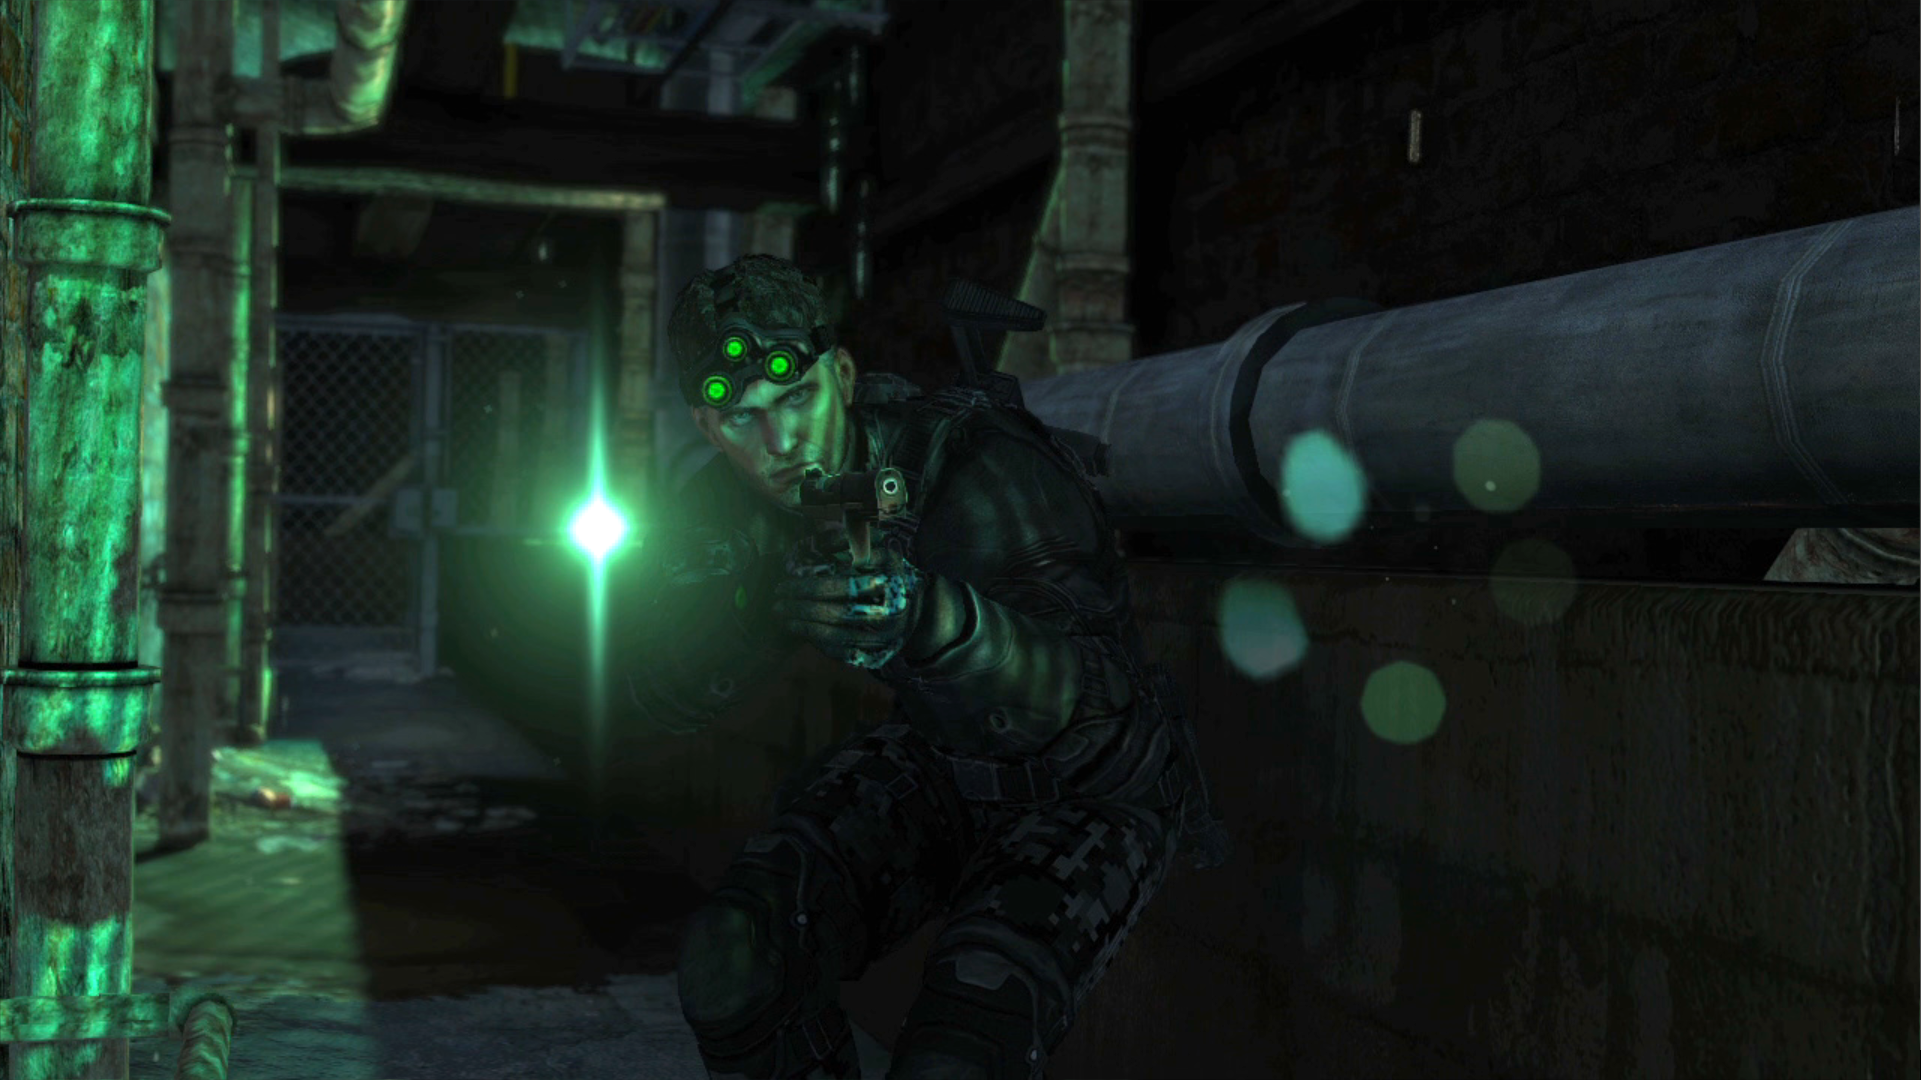 Tom-Clancys-Splinter-Cell-Blacklist-3